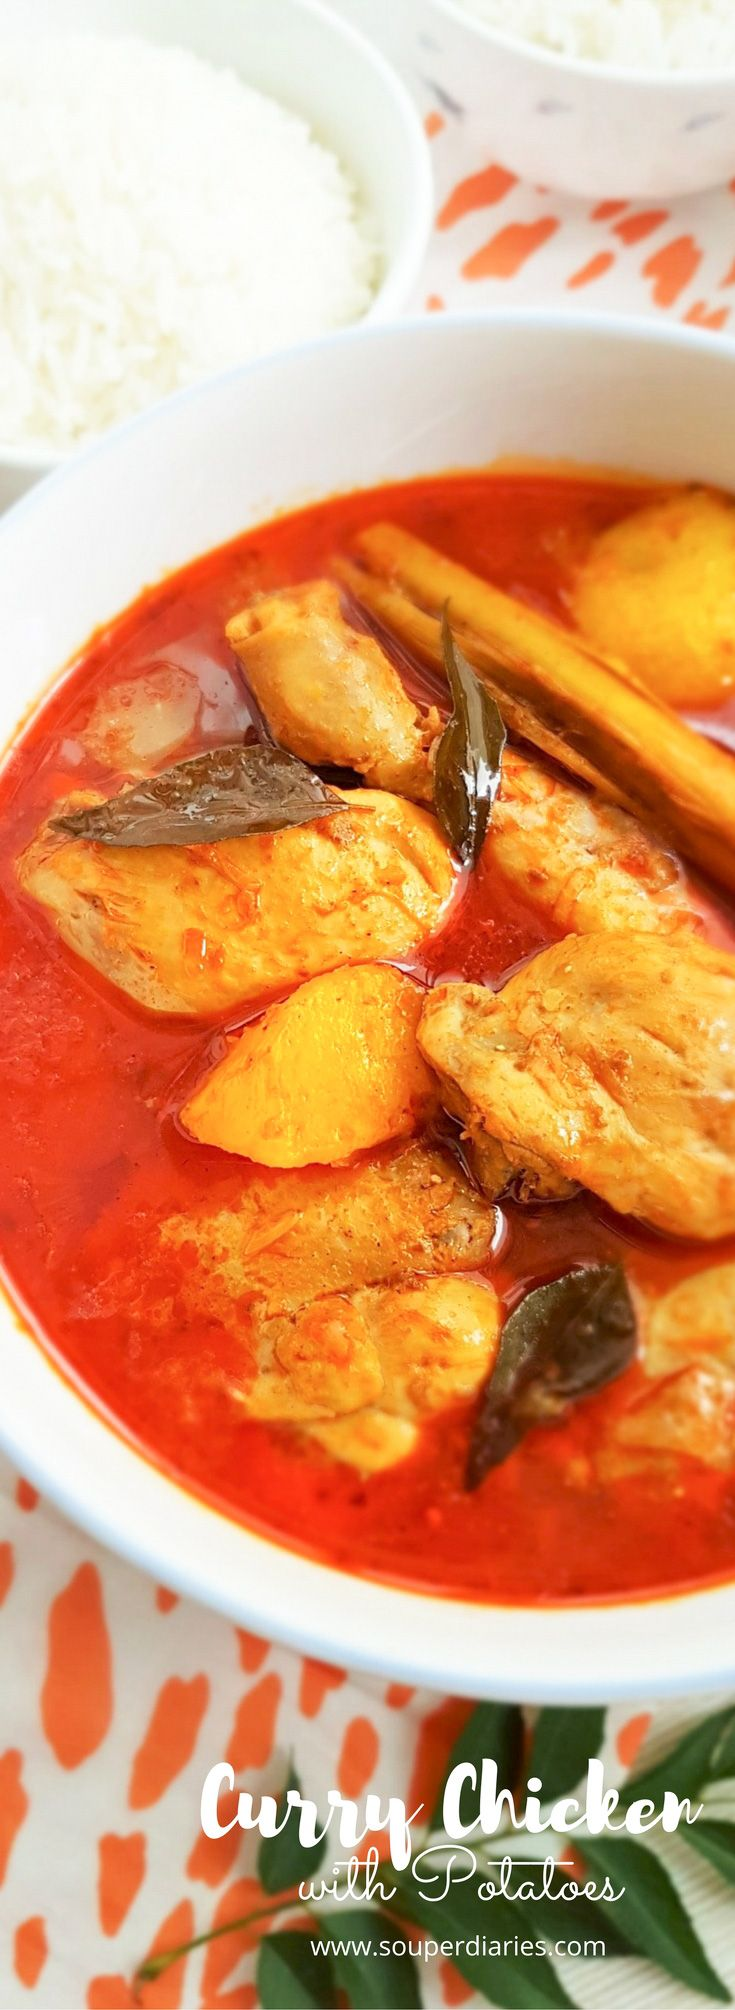 Easy Curry Chicken with Potatoes recipe. Instant curry paste, lemongrass, curry leaves and yogurt come together to create the most appetizing and delicious curry. #currychicken #chickencurry #spicyfood #spicy | souperdiaries.com